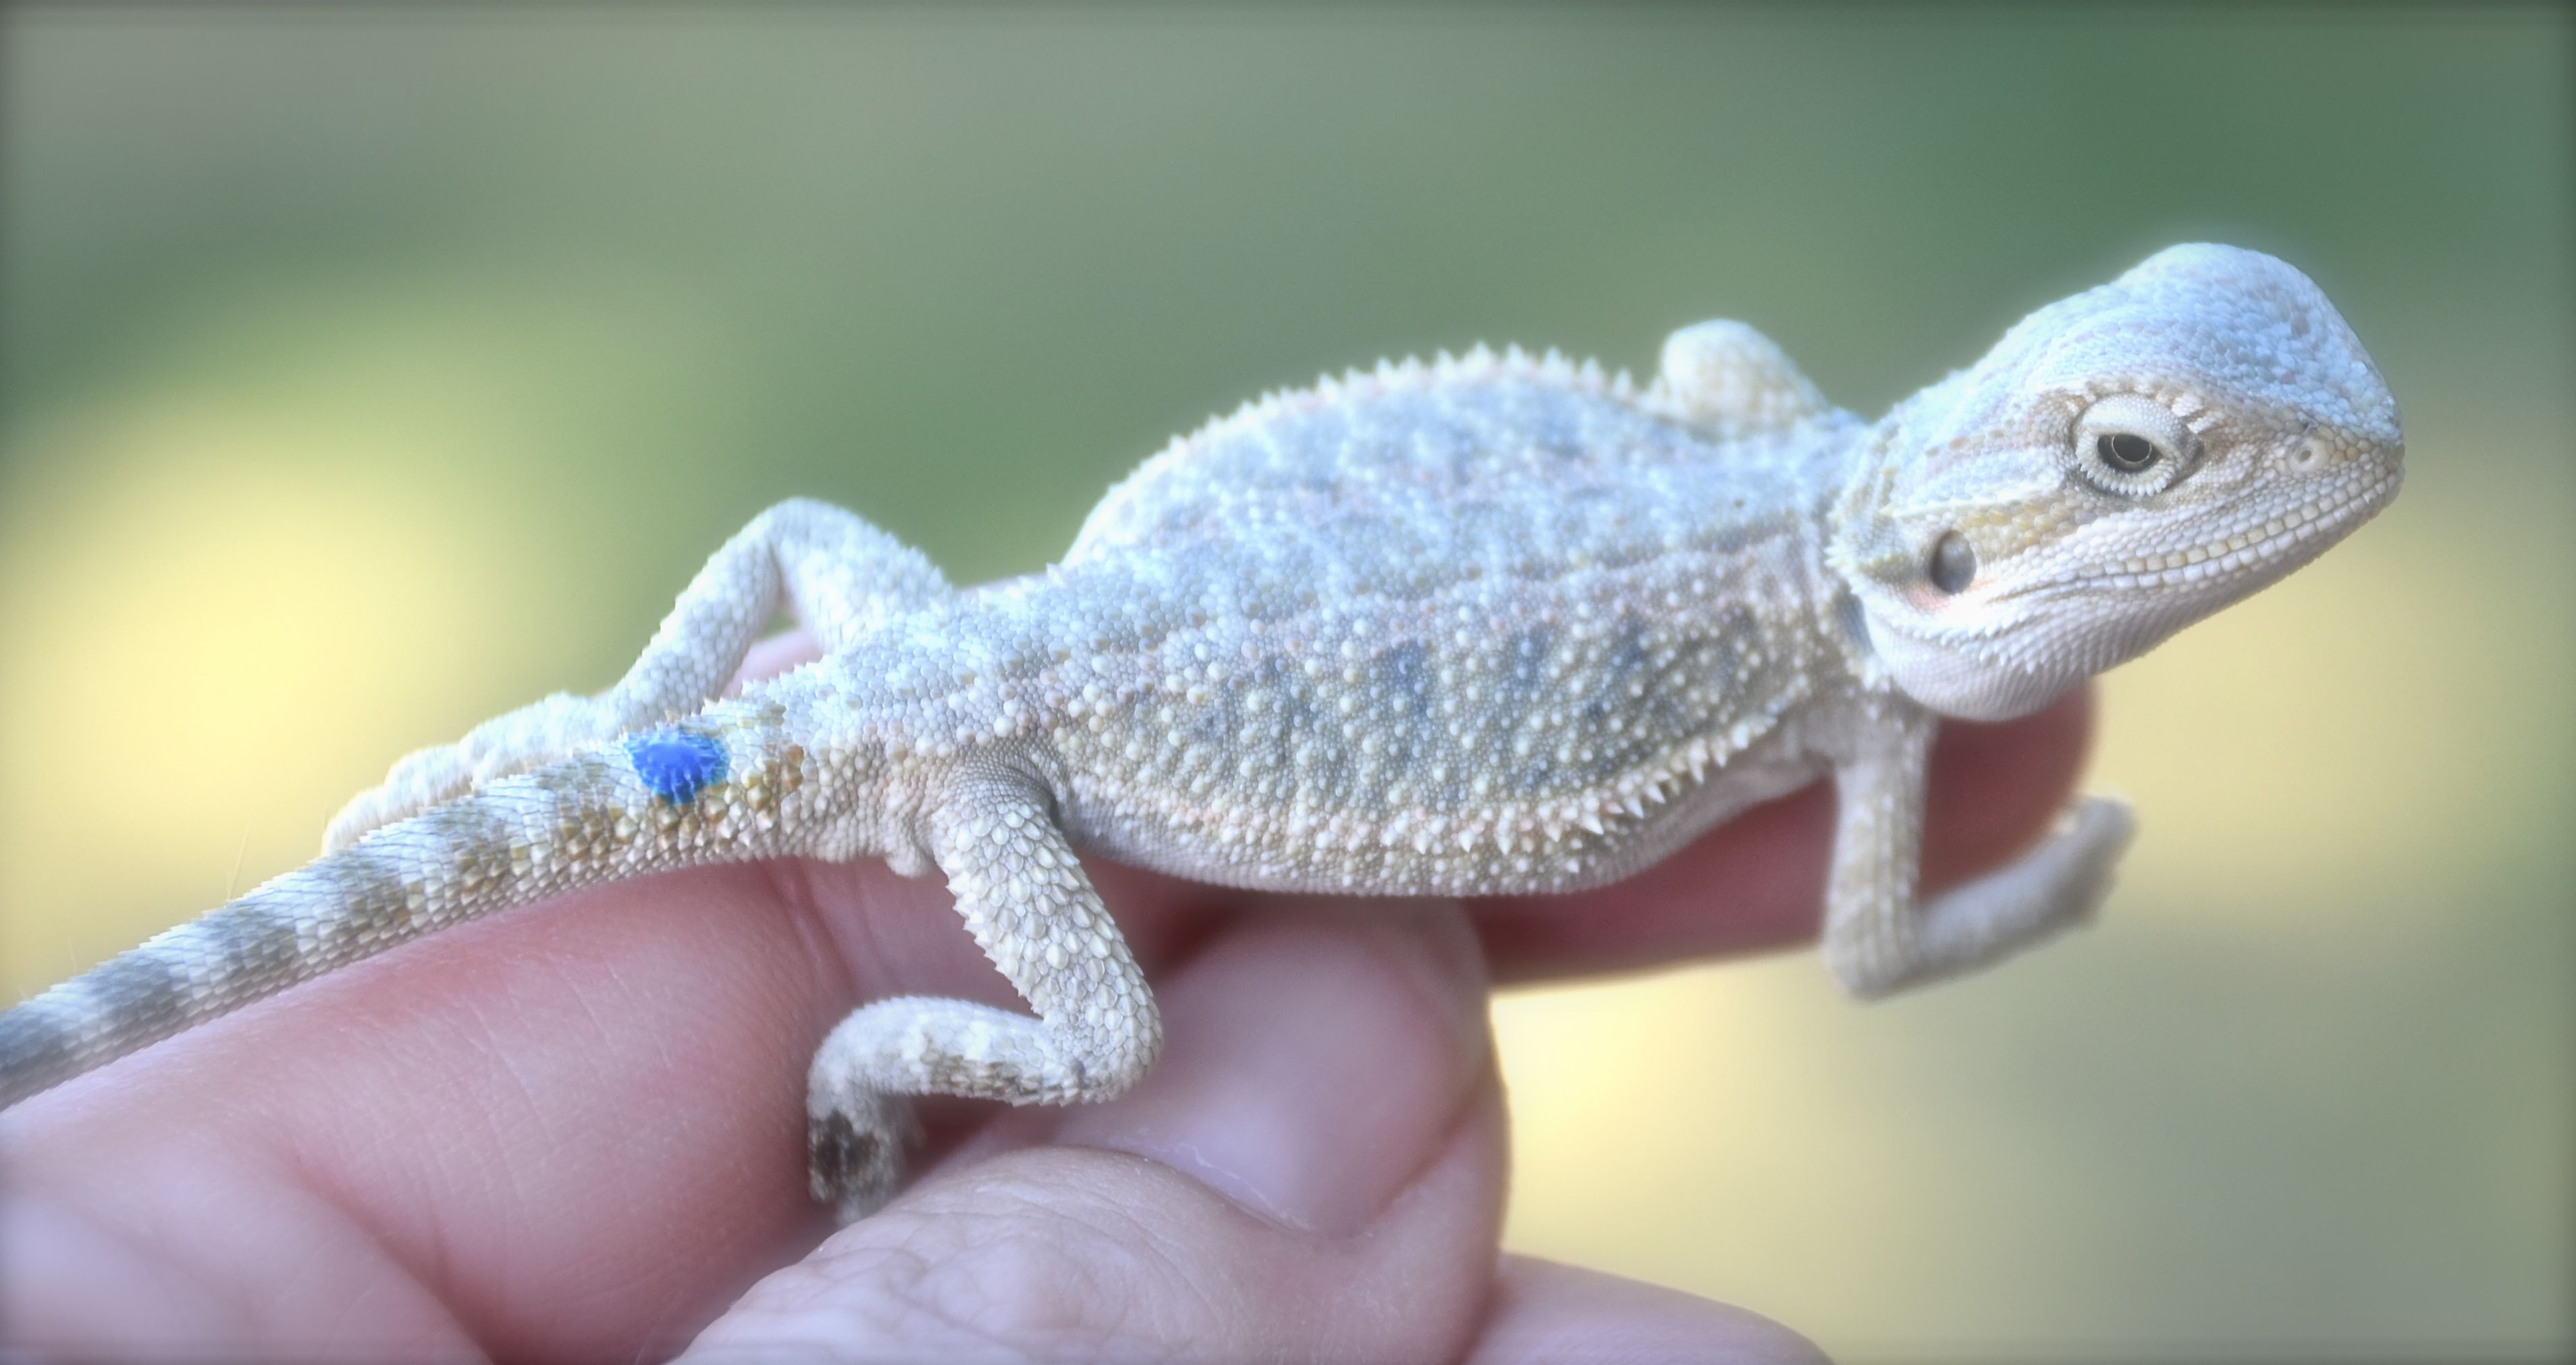 Polar hypo baby bearded dragon | Jossranch Bearded Dragons ...